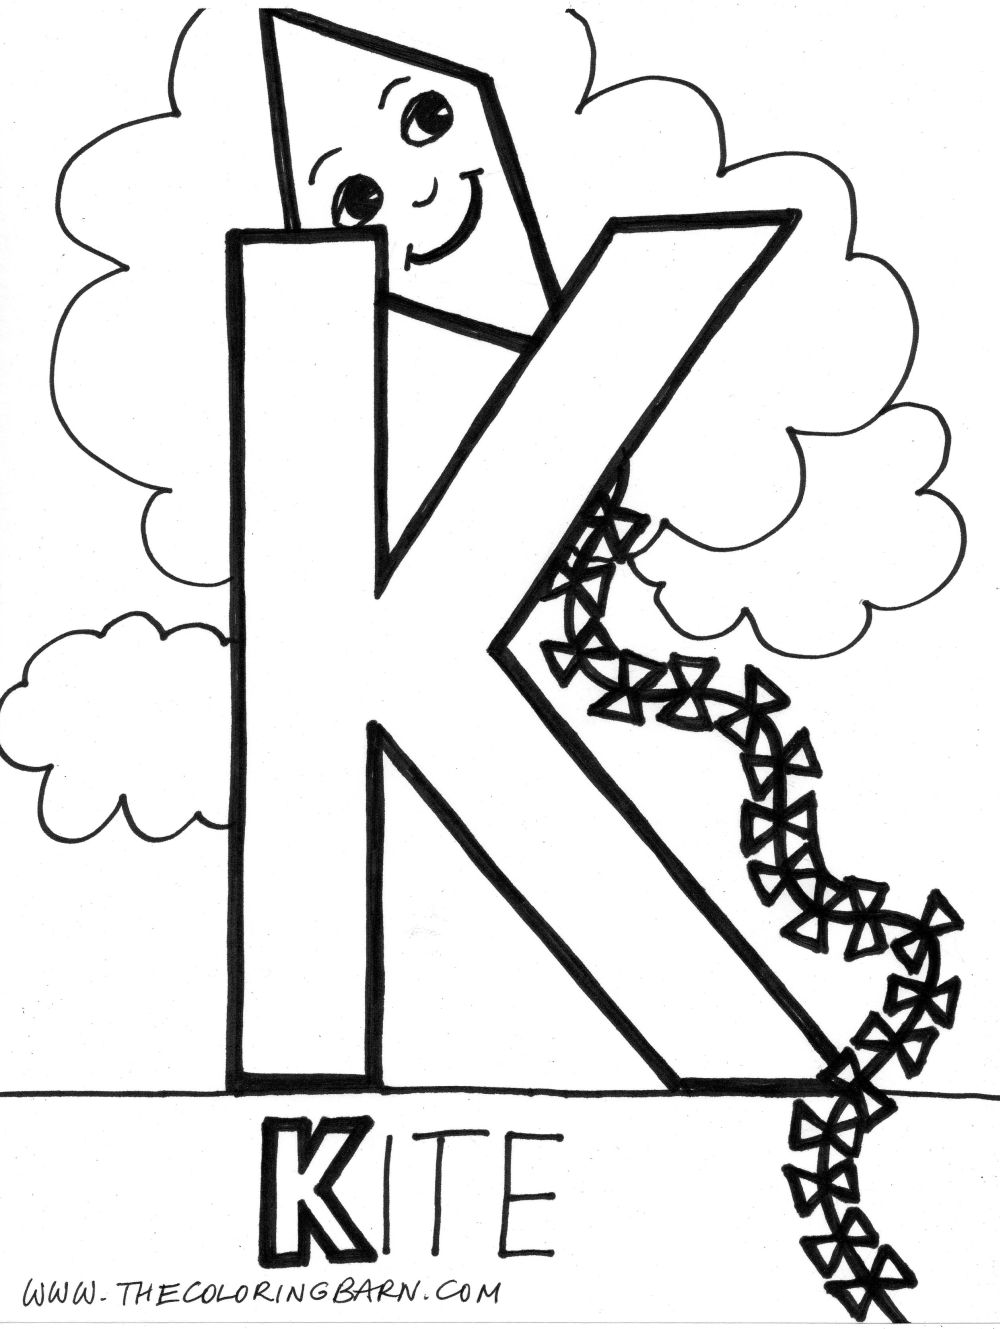 Letter Coloring Pages | Only Coloring Pages